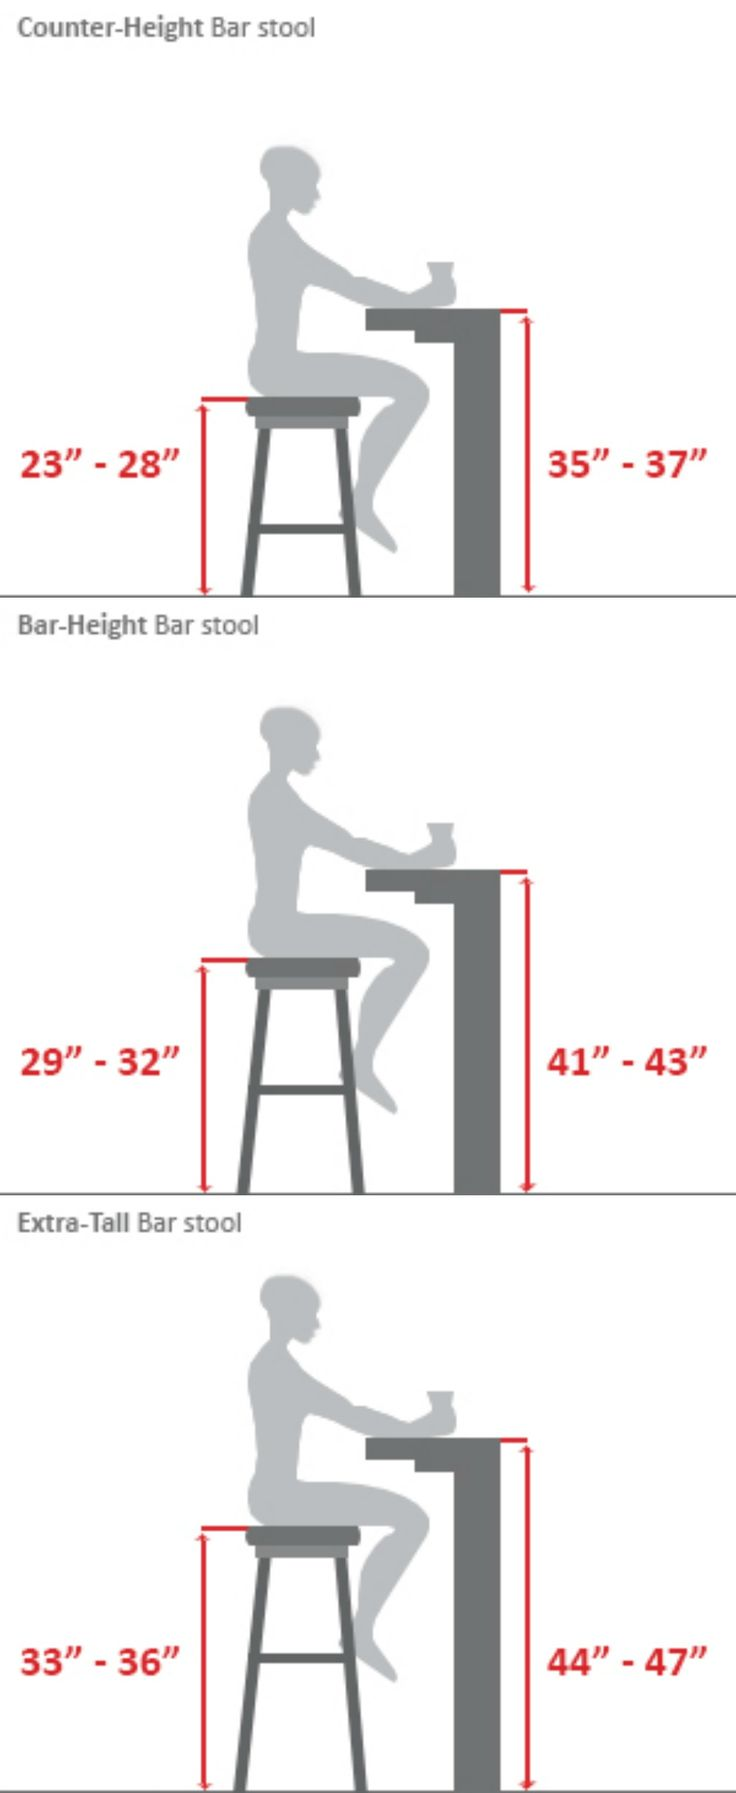 Pedicure chair dimensions - Alturas Barra Y Taburete Bar Stool Buying Guide Or The Builder S Guide When Building Desks Tables Or Bars These Measurements Come In Handy